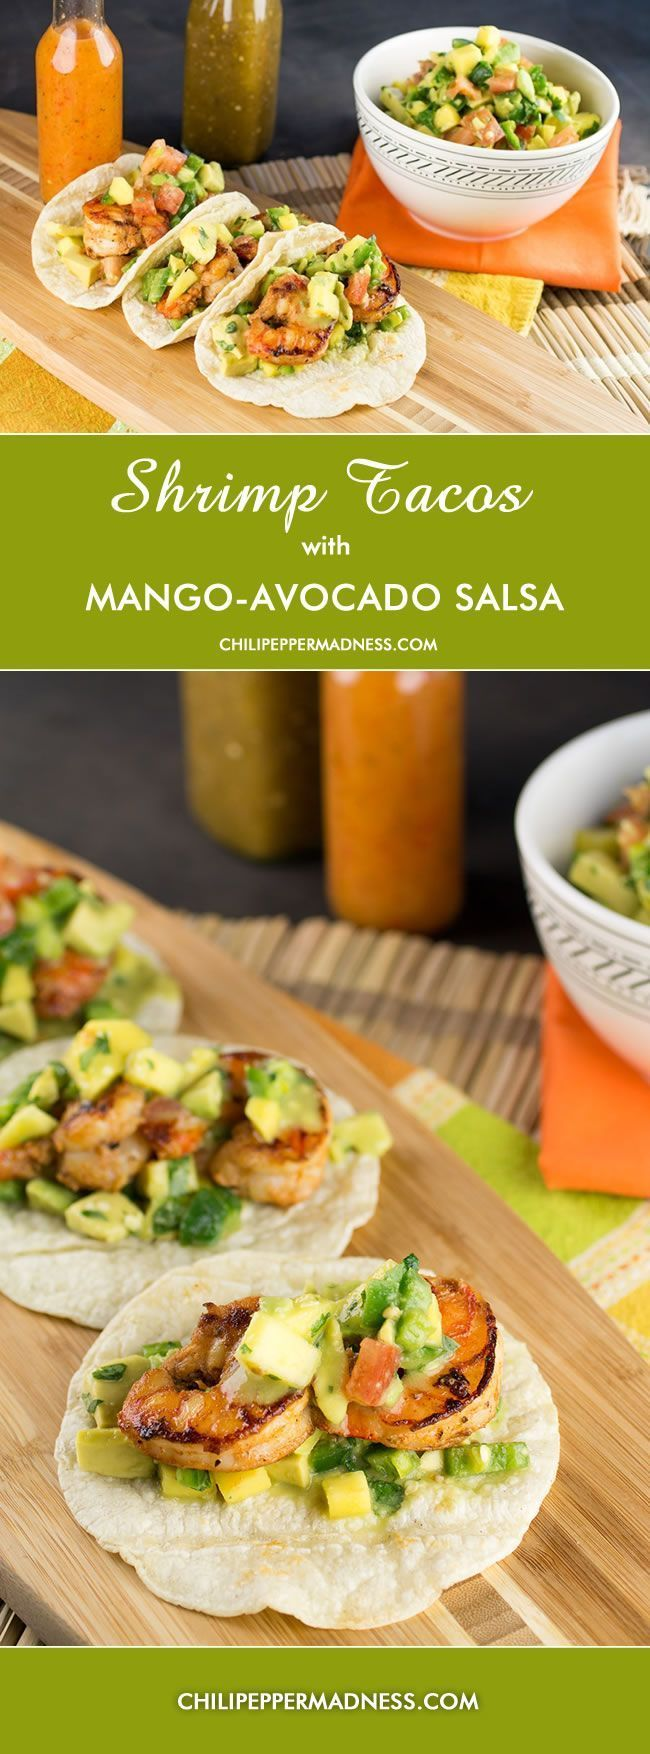 Shrimp Tacos with Fresh Mango-Avocado Salsa from ChiliPepperMadness.com